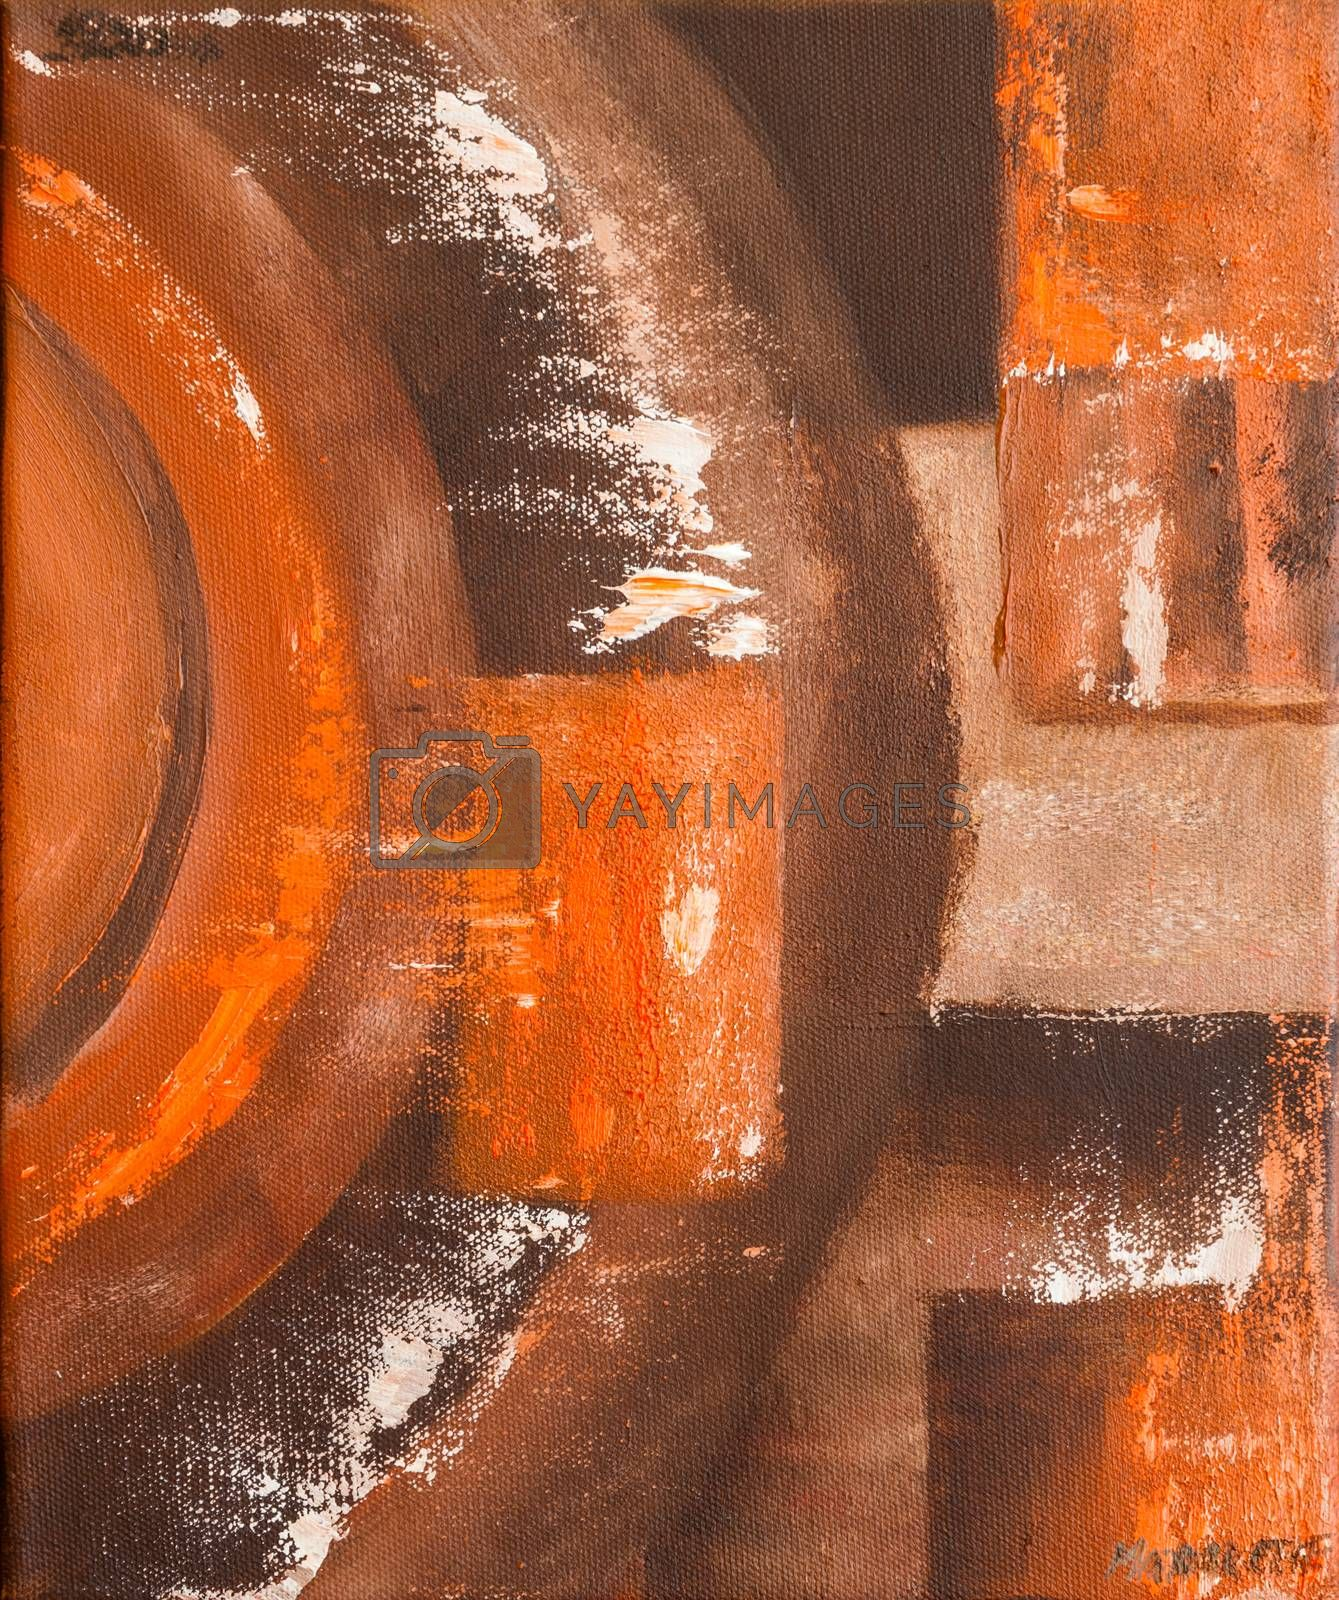 This non-figurative painting is playing with colors and shape. Light and dark. Light brown, dark brown, red and white.